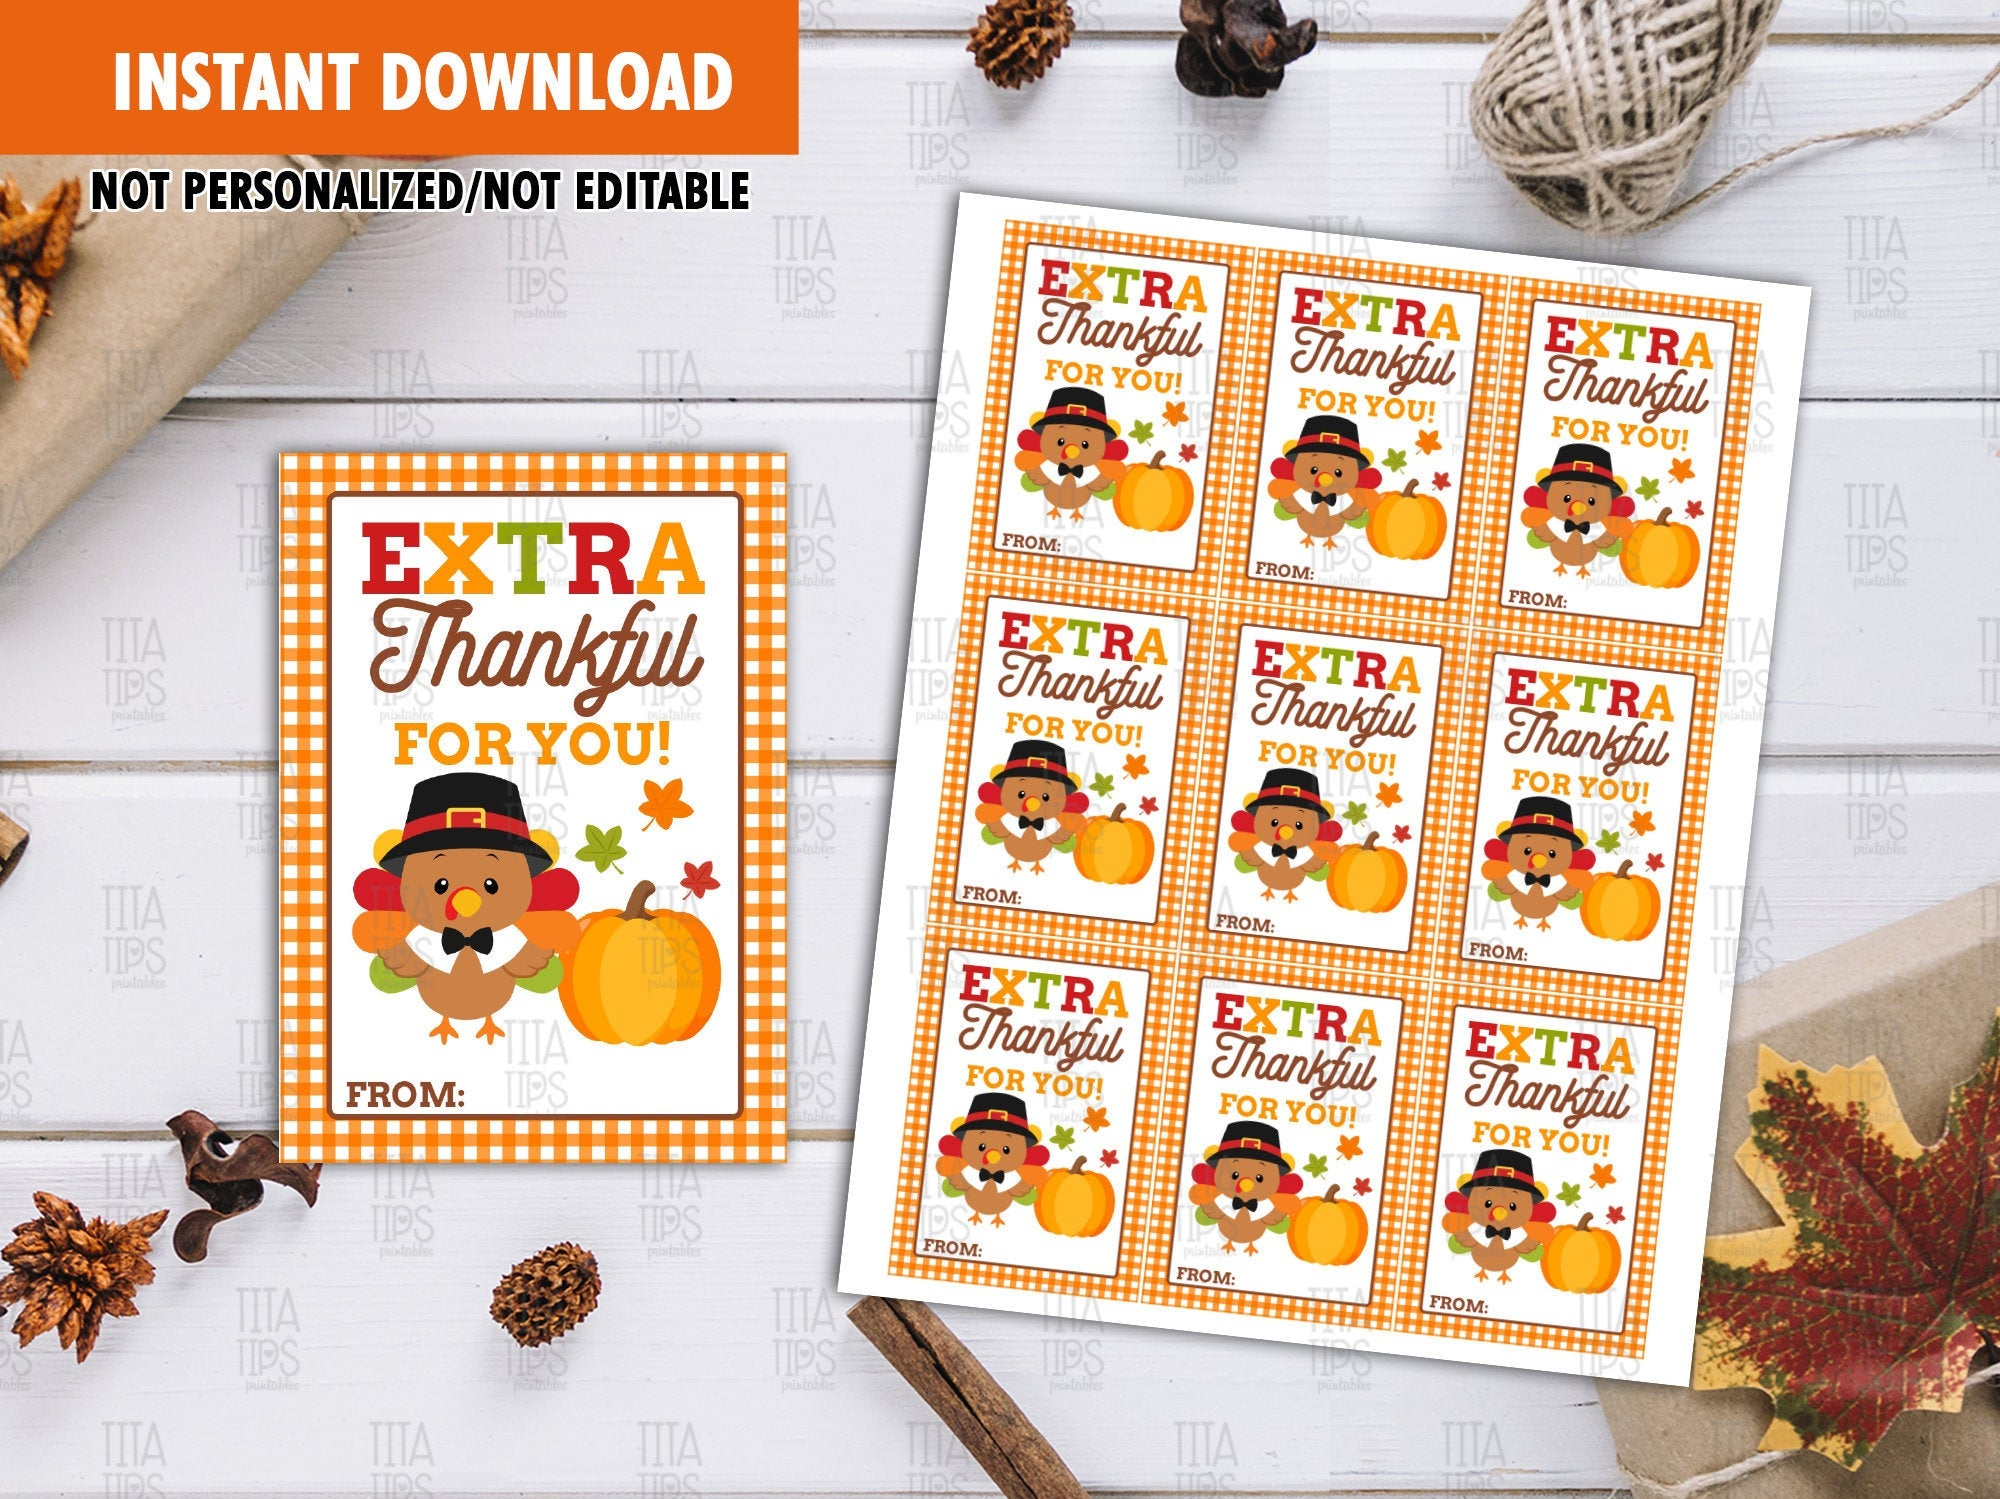 Extra Thankful for you Gift Tags, Turkey with Hat Favors Tags, Autumn Exchange Ideas - TitaTipsPrintables